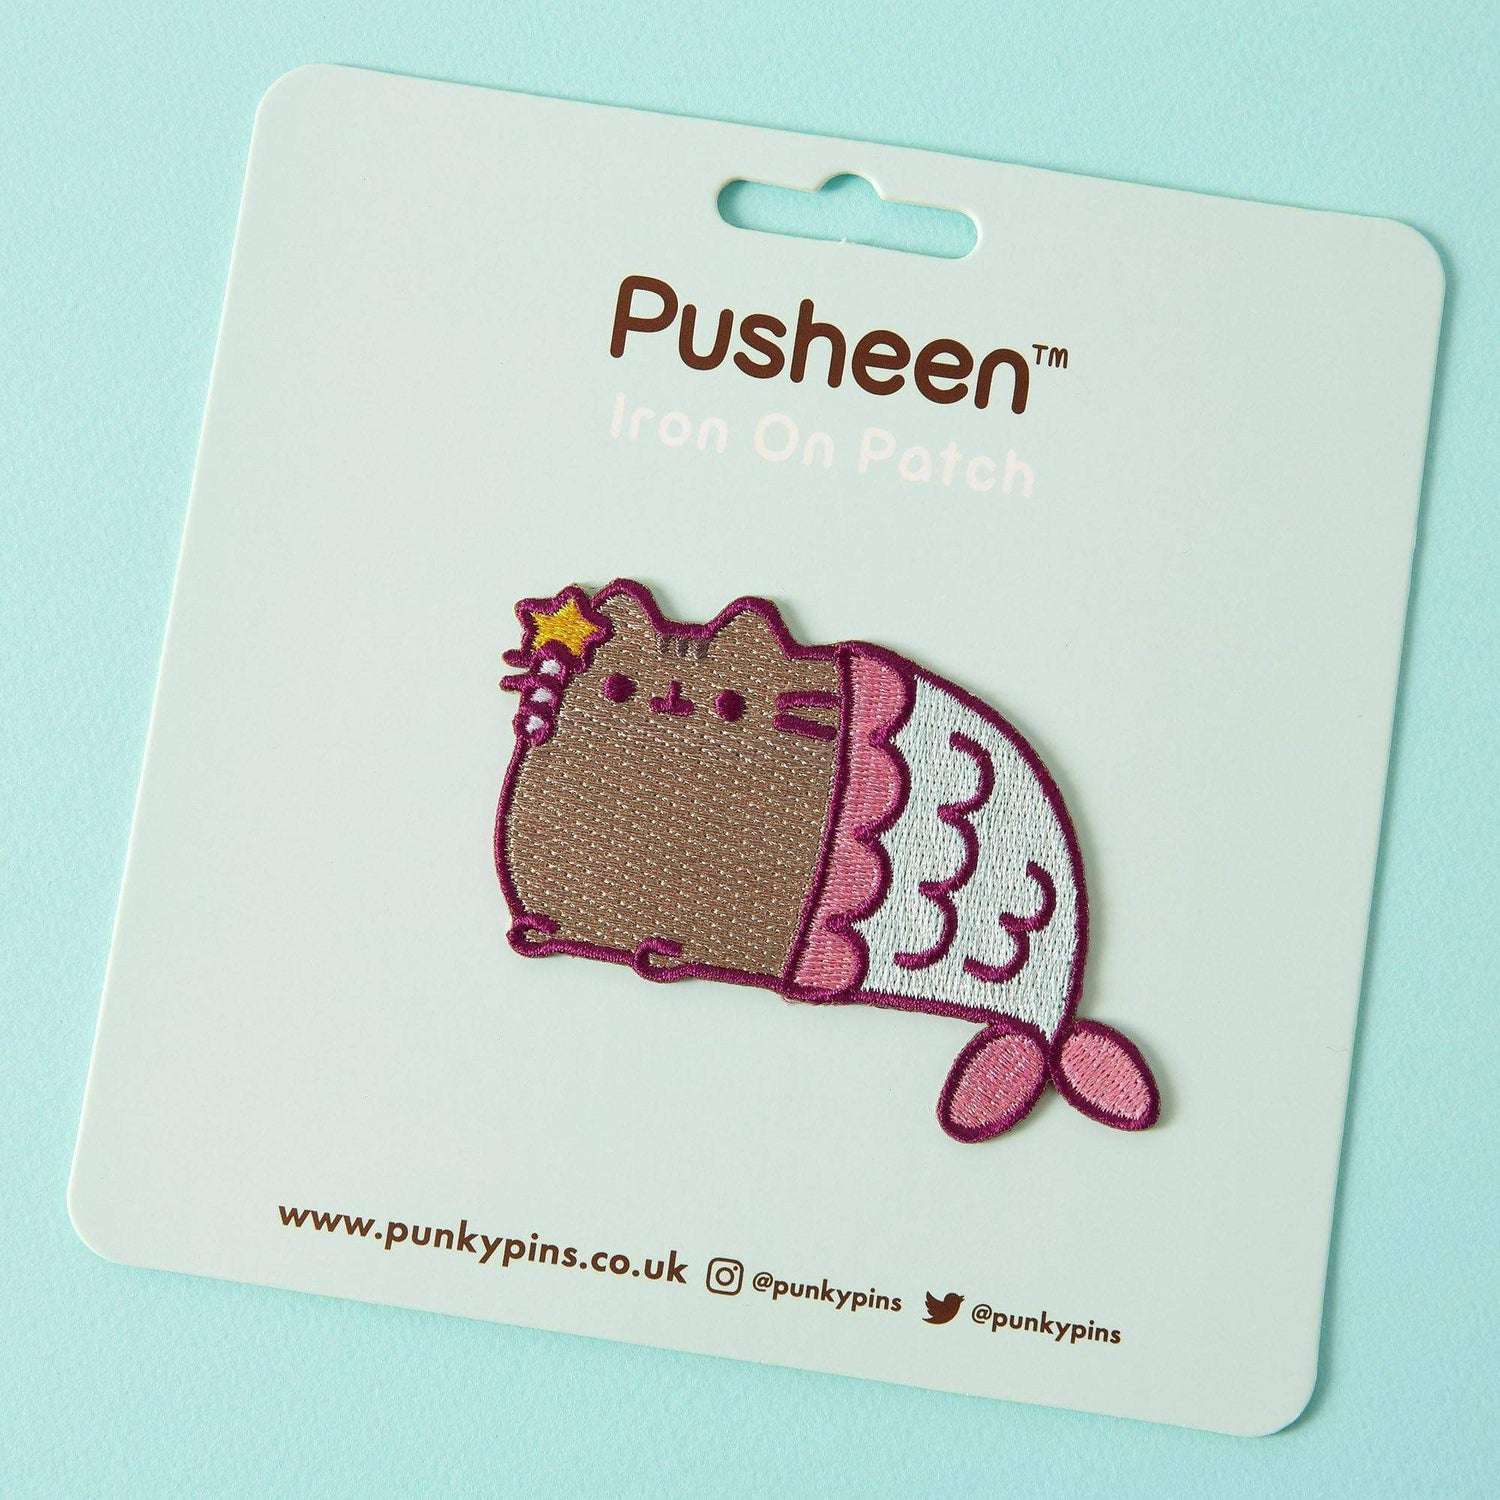 Punky Pins Pusheen Mermaid Iron On Patch